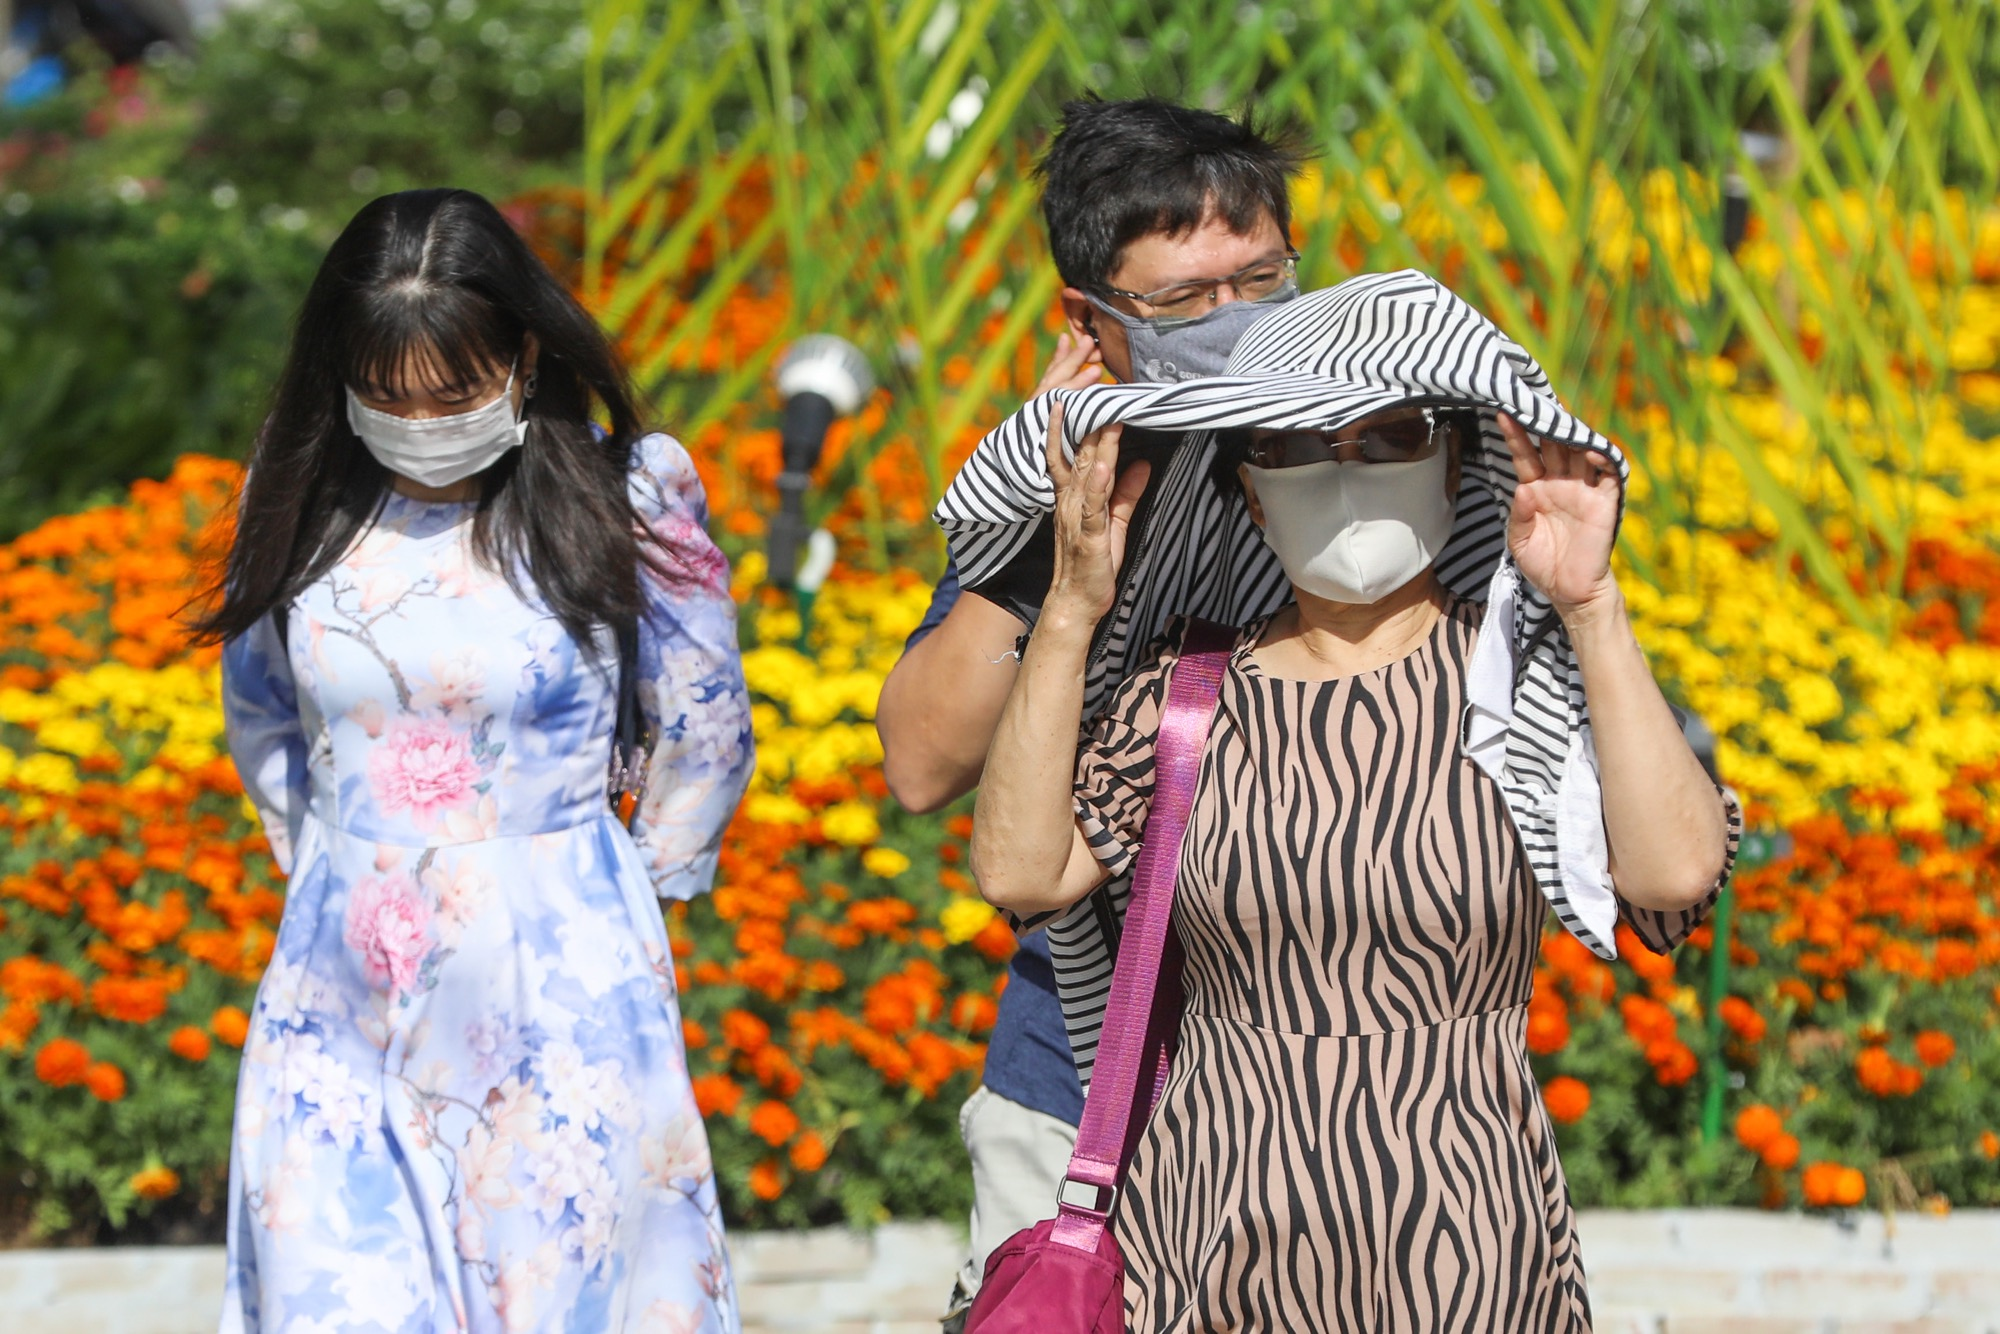 As it got hotter towards noon, many visitors said the masks made them uncomfortable.